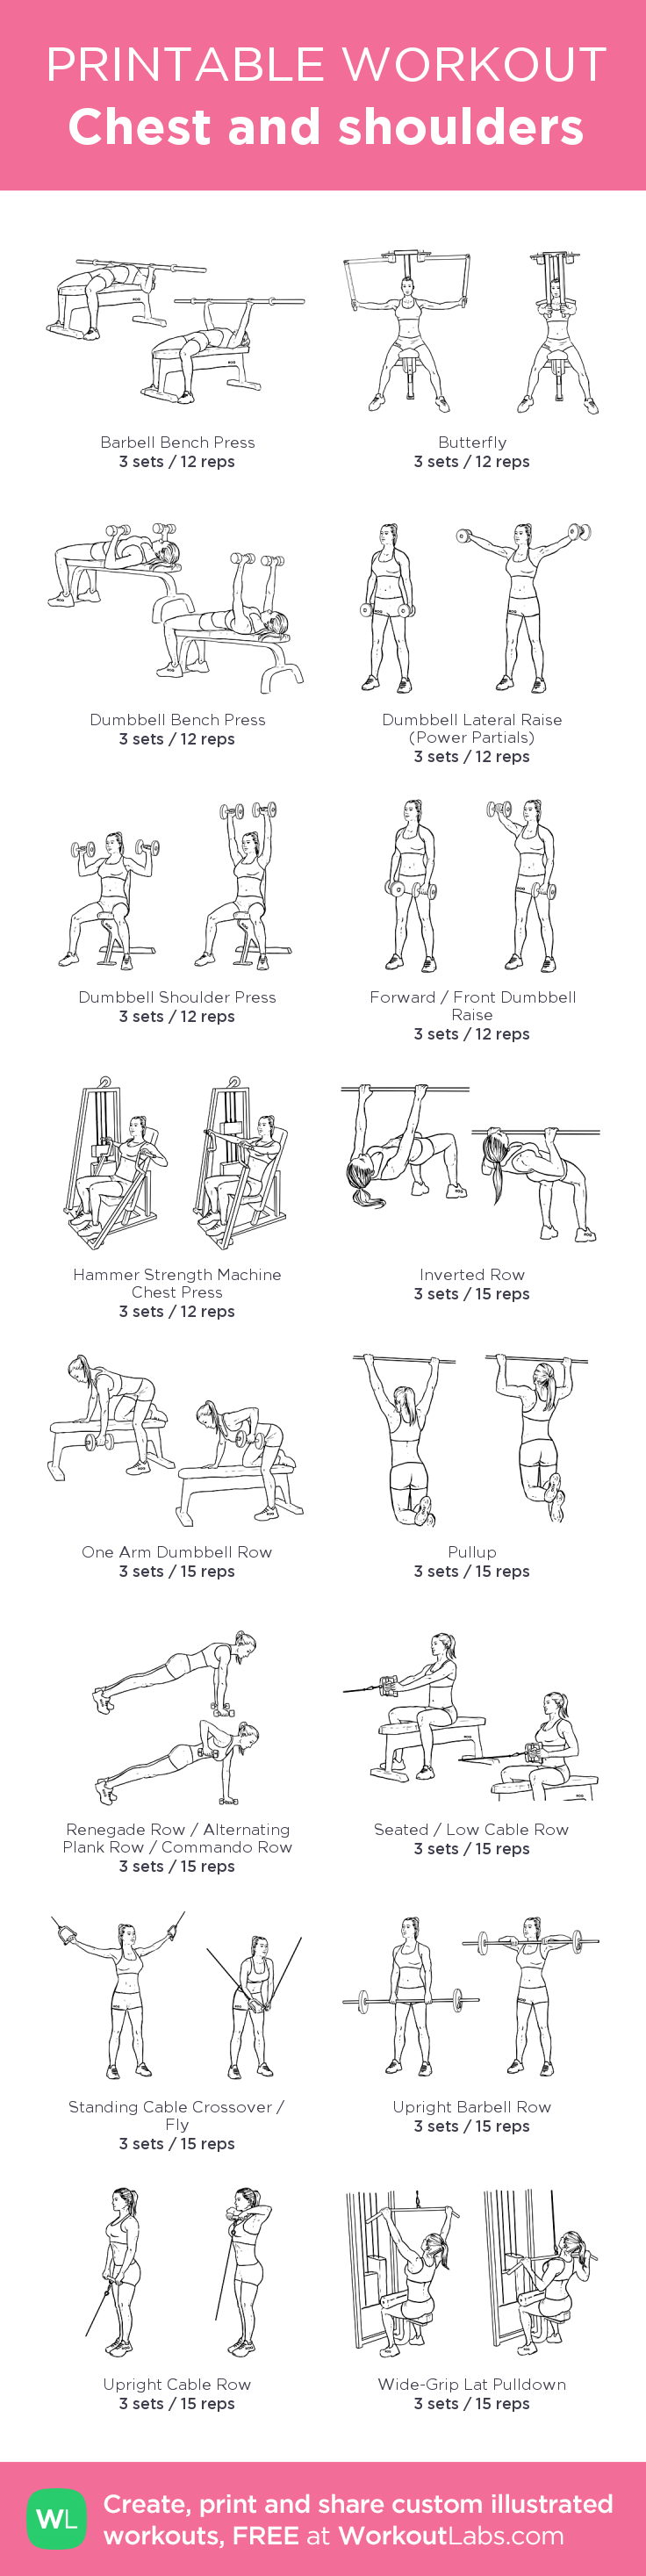 Chest and shoulders: my custom printable workout by @WorkoutLabs ...